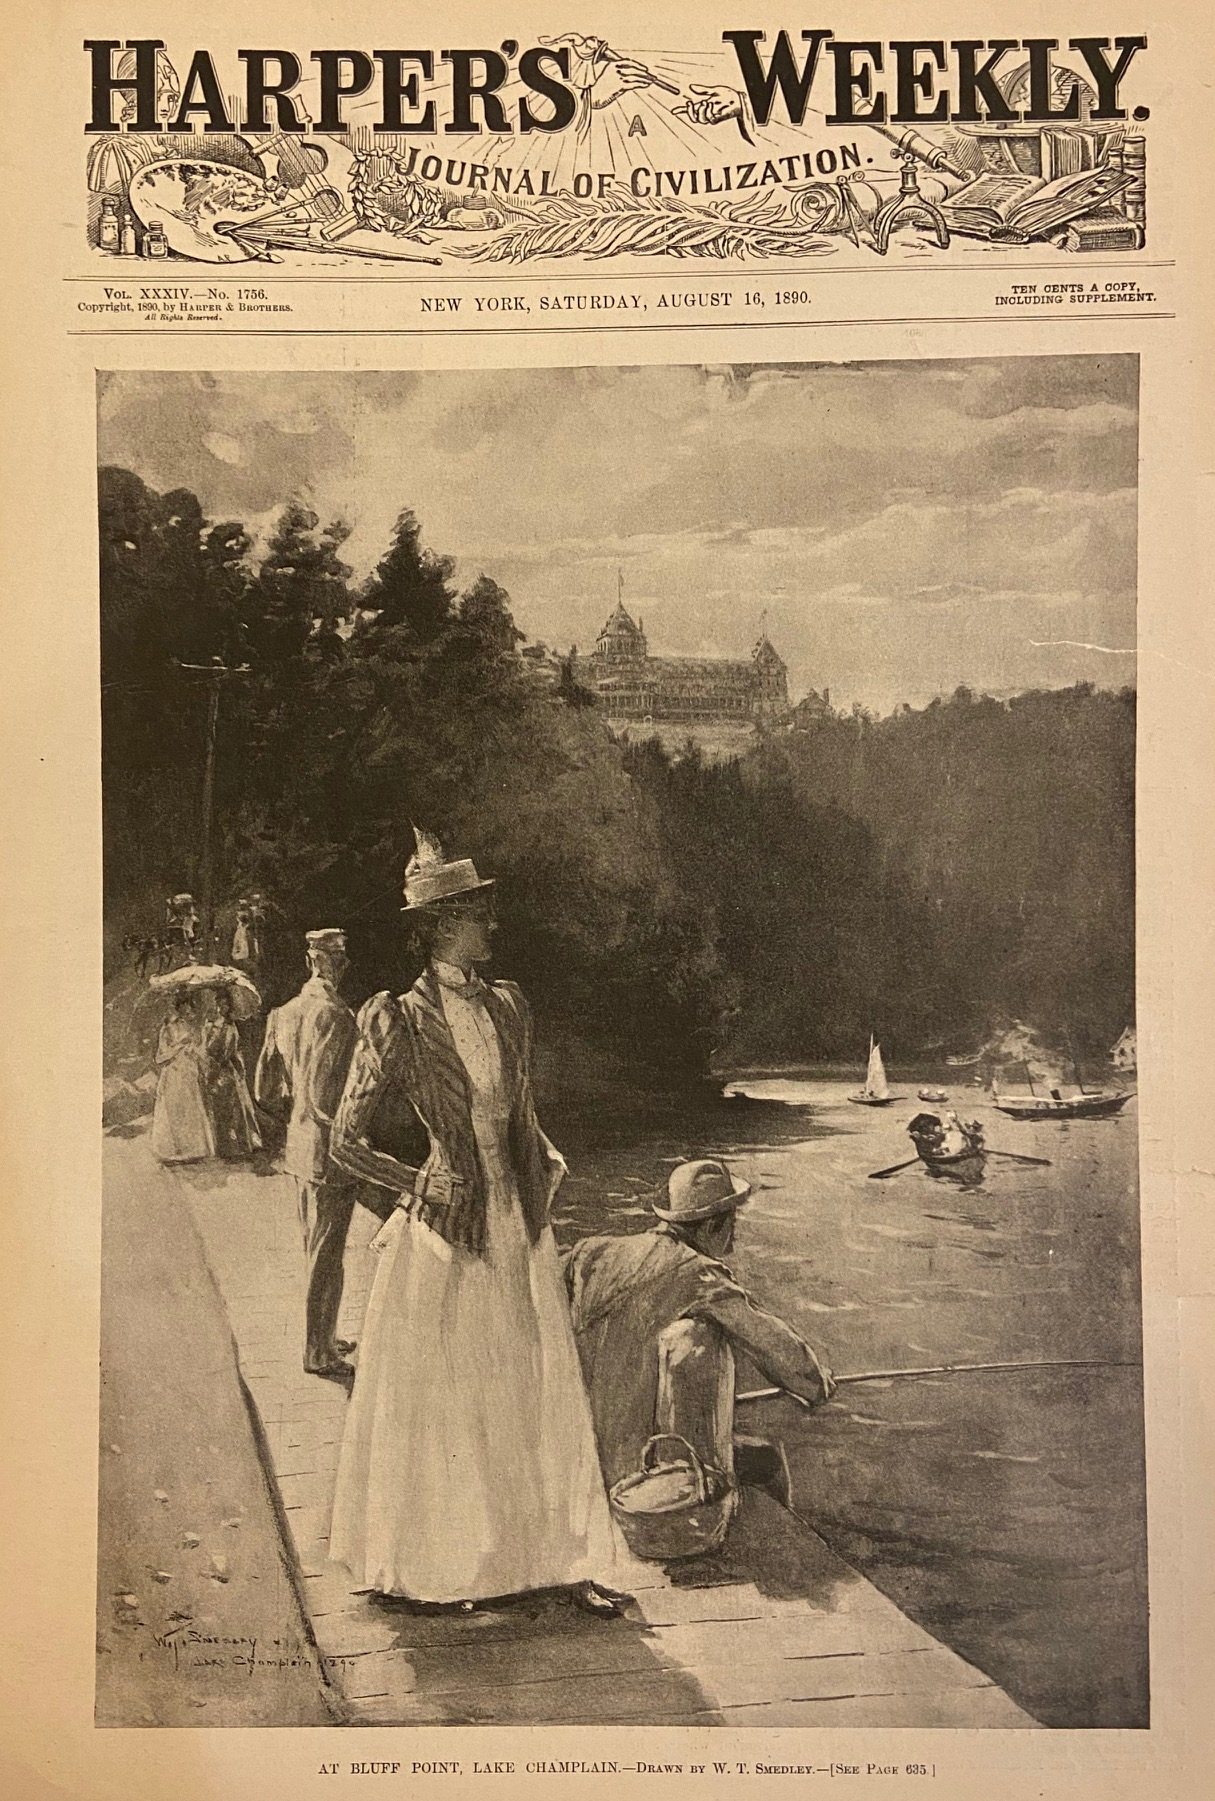 At Bluff Point, Lake Champlain: HARPER'S WEEKLY